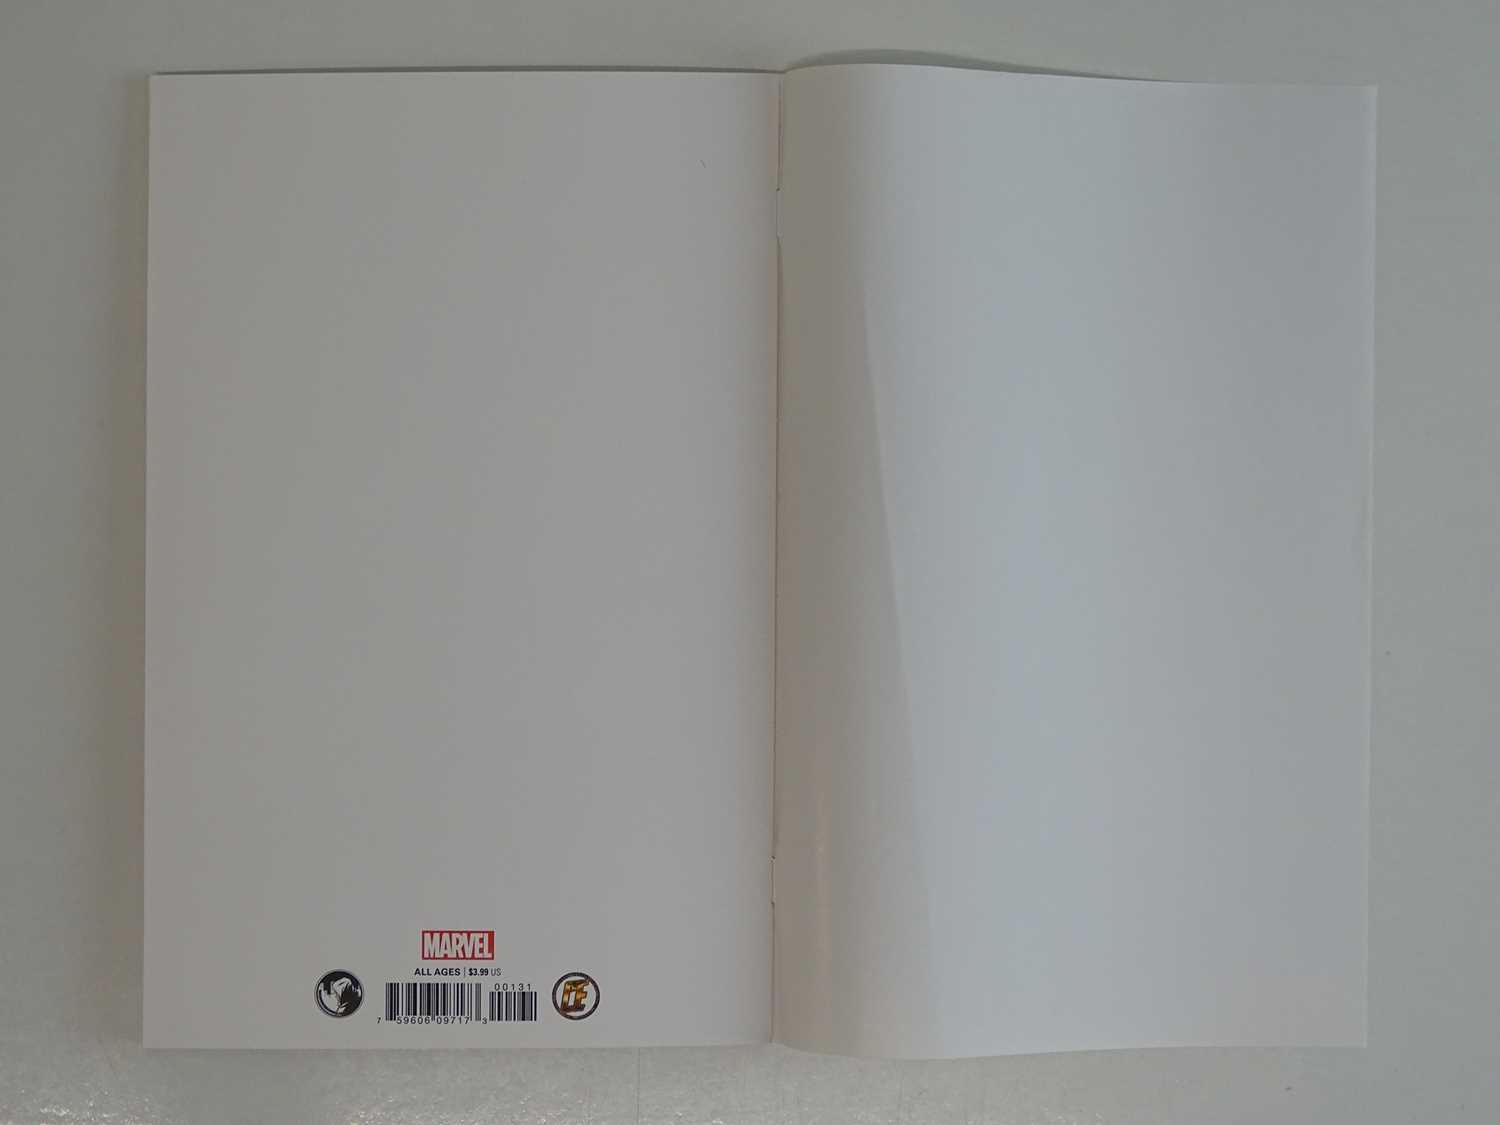 AMAZING FANTASY #15 - (1968 - MARVEL) - Facsimile Edition + White Cover with cover protector - Image 3 of 8